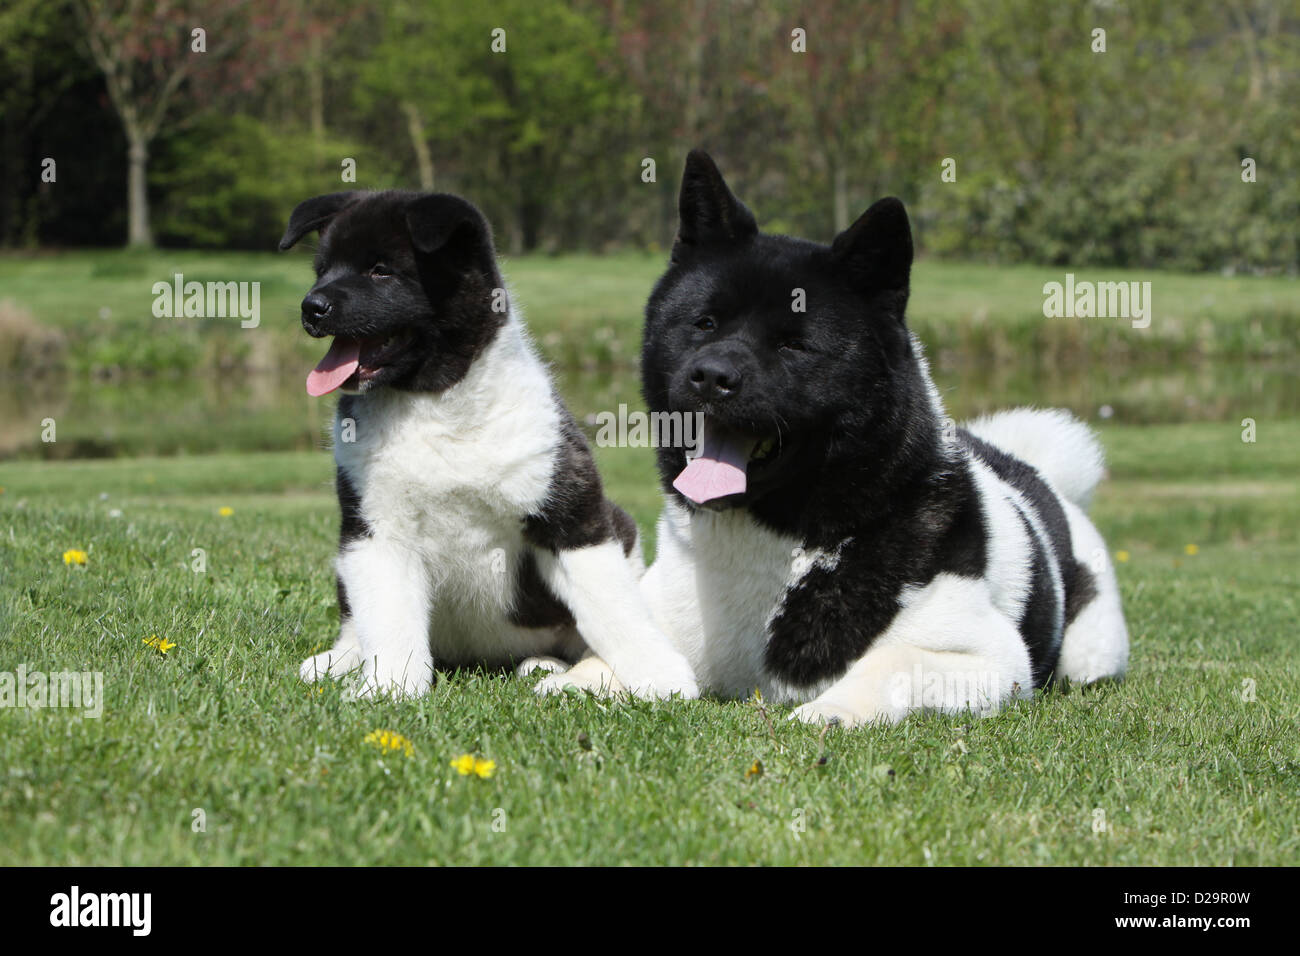 Dog American Akita Great Japanese Dog Adult And Puppy In A Garden